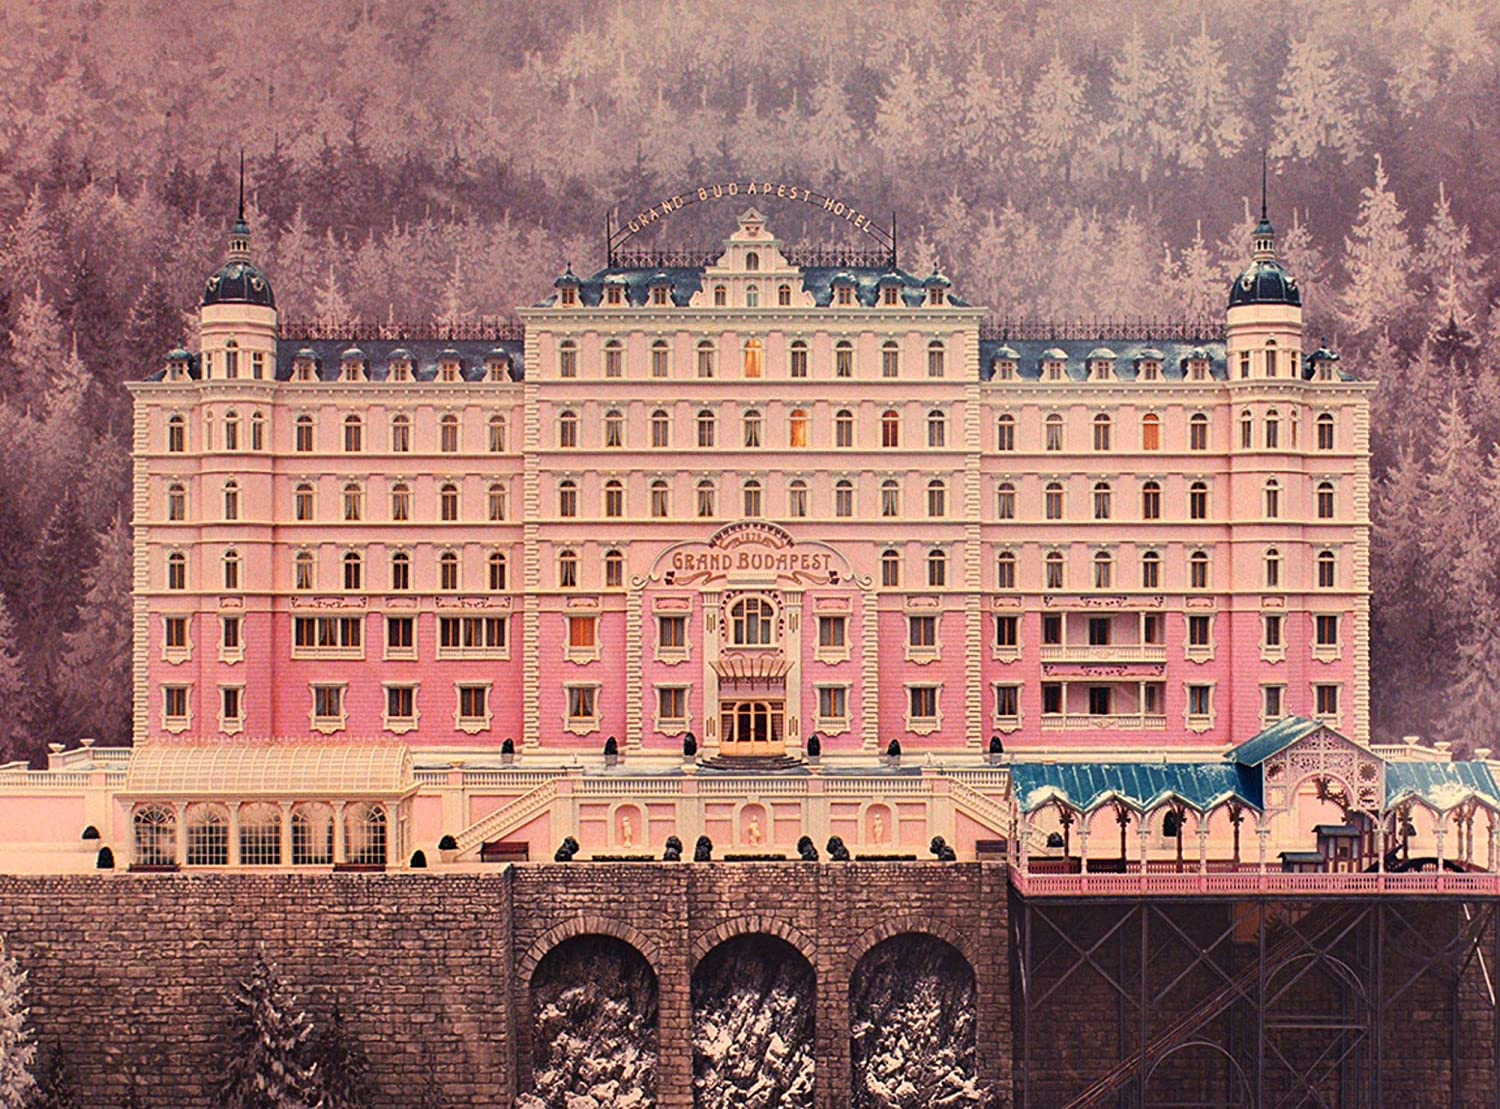 Amazon Com The Grand Budapest Hotel Poster Wall Decor The Grand Budapest Hotel Wall Print Gift Idea Wallpaper The Grand Budapest Hotel Artwork Gift For Him Gift For Her Handmade